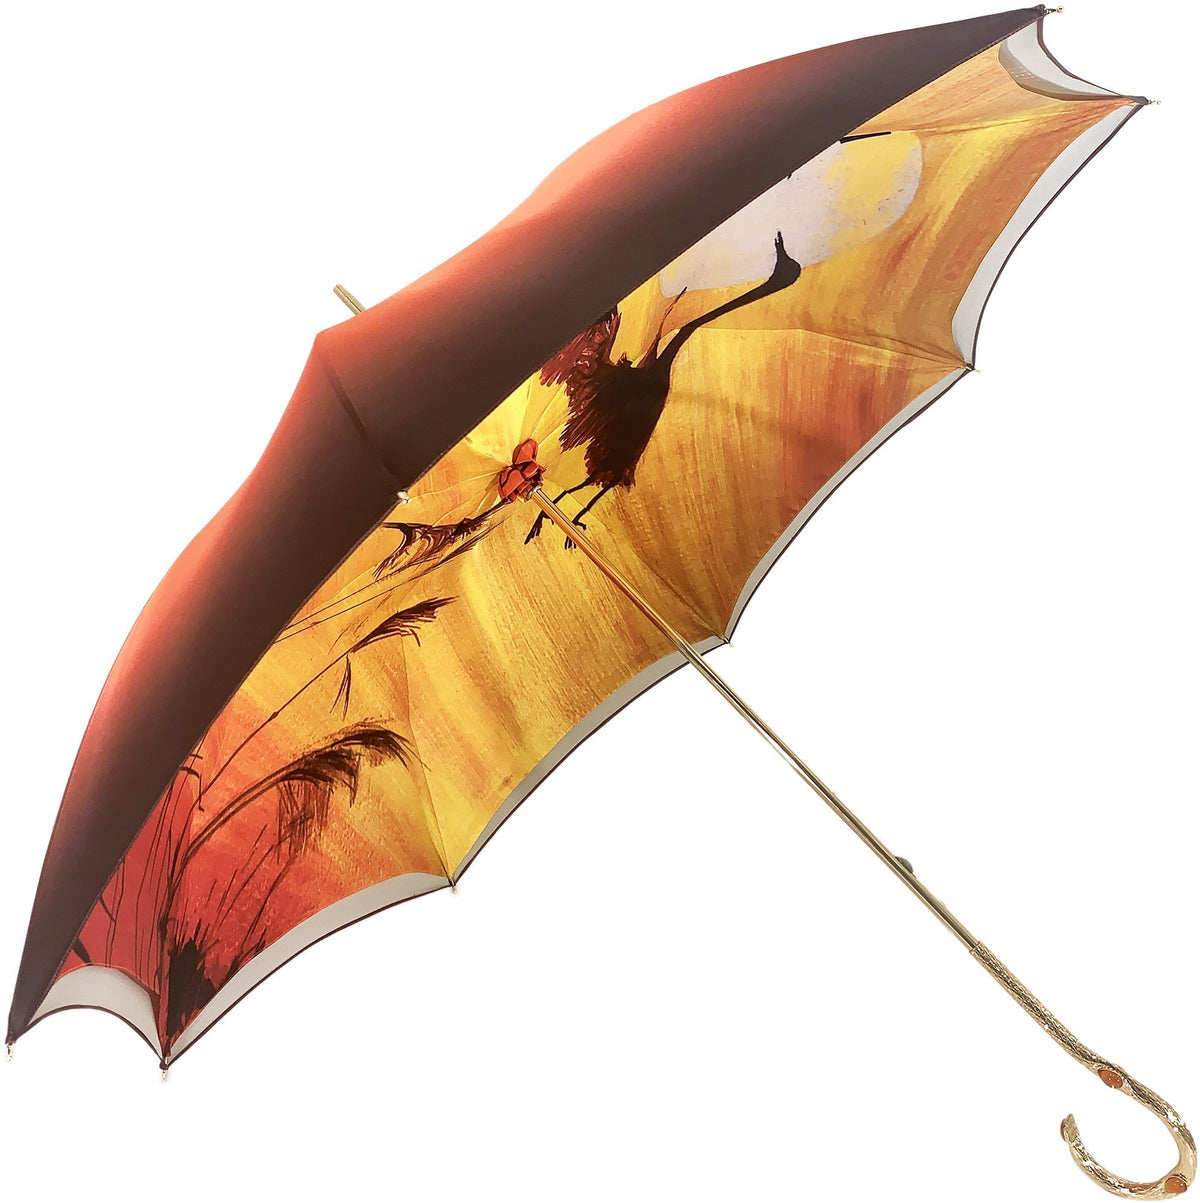 LUXURY ORANGE HERONS UMBRELLA DOUBLE CLOTH